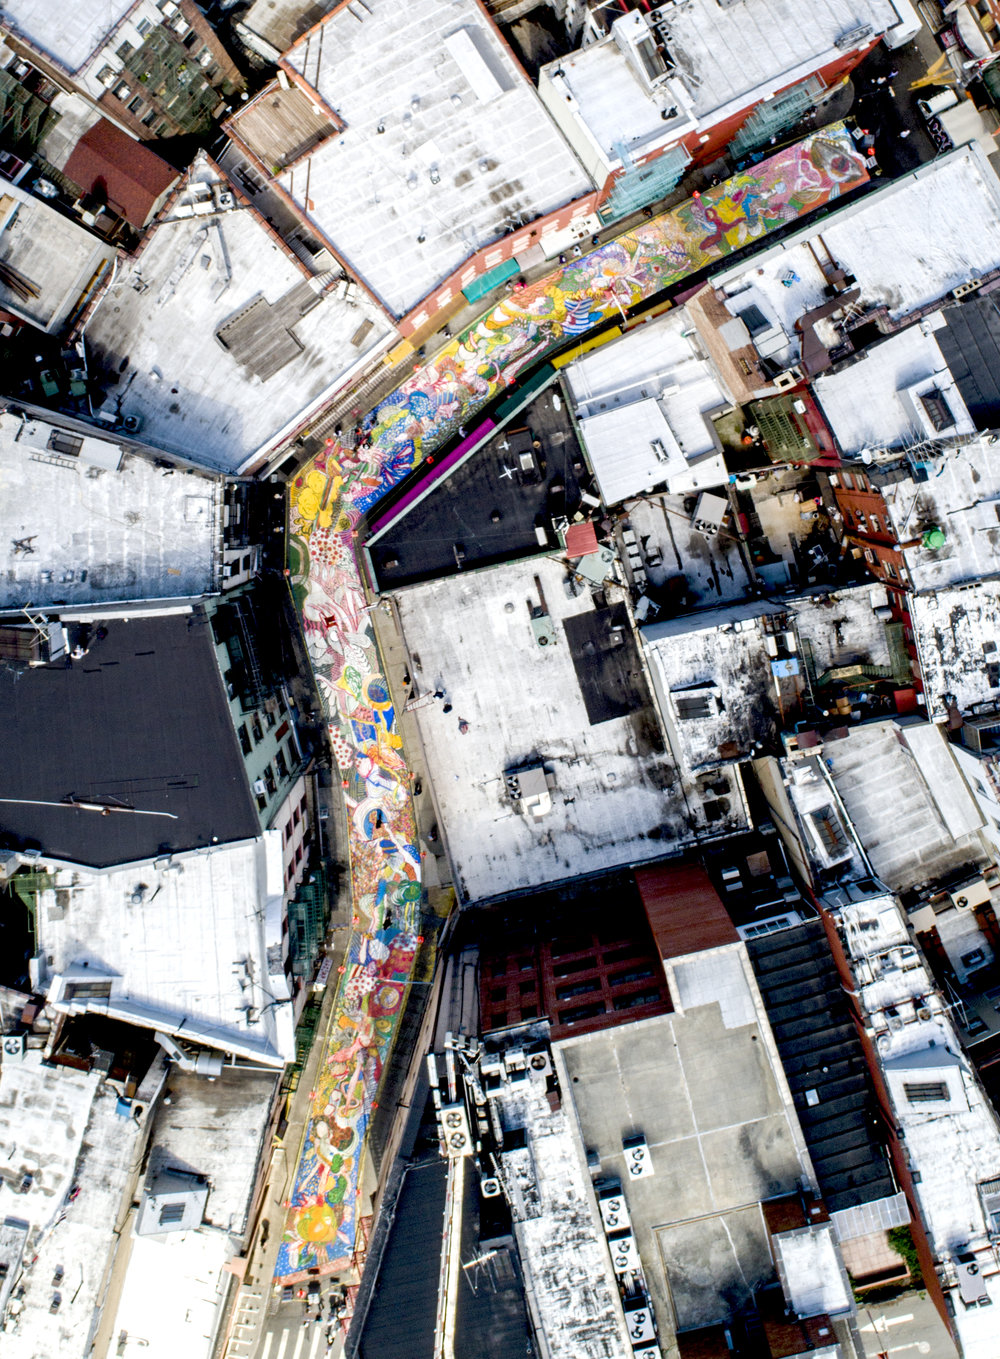 Chen Dongfan.  The Song of Dragon and Flowers,  aerial view Photograph by Nadia Peichao Lin ©Chen Dongfan, courtesy NYCDOT, Chinatown Partnership, Fou Gallery and Art Bridge